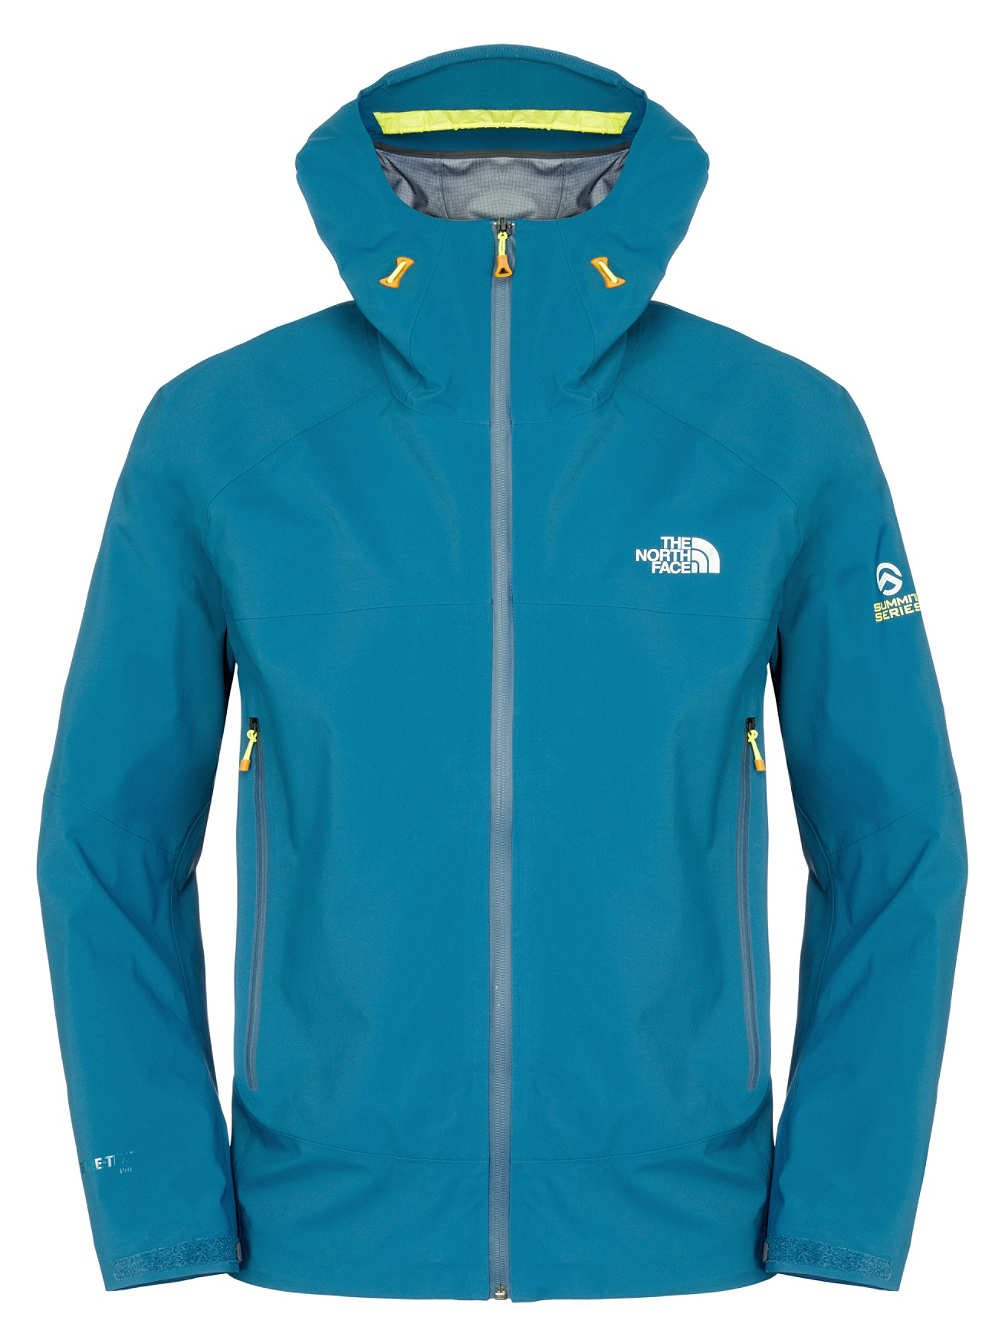 THE NORTH FACE Herren Jacke Point Five NG günstig bestellen